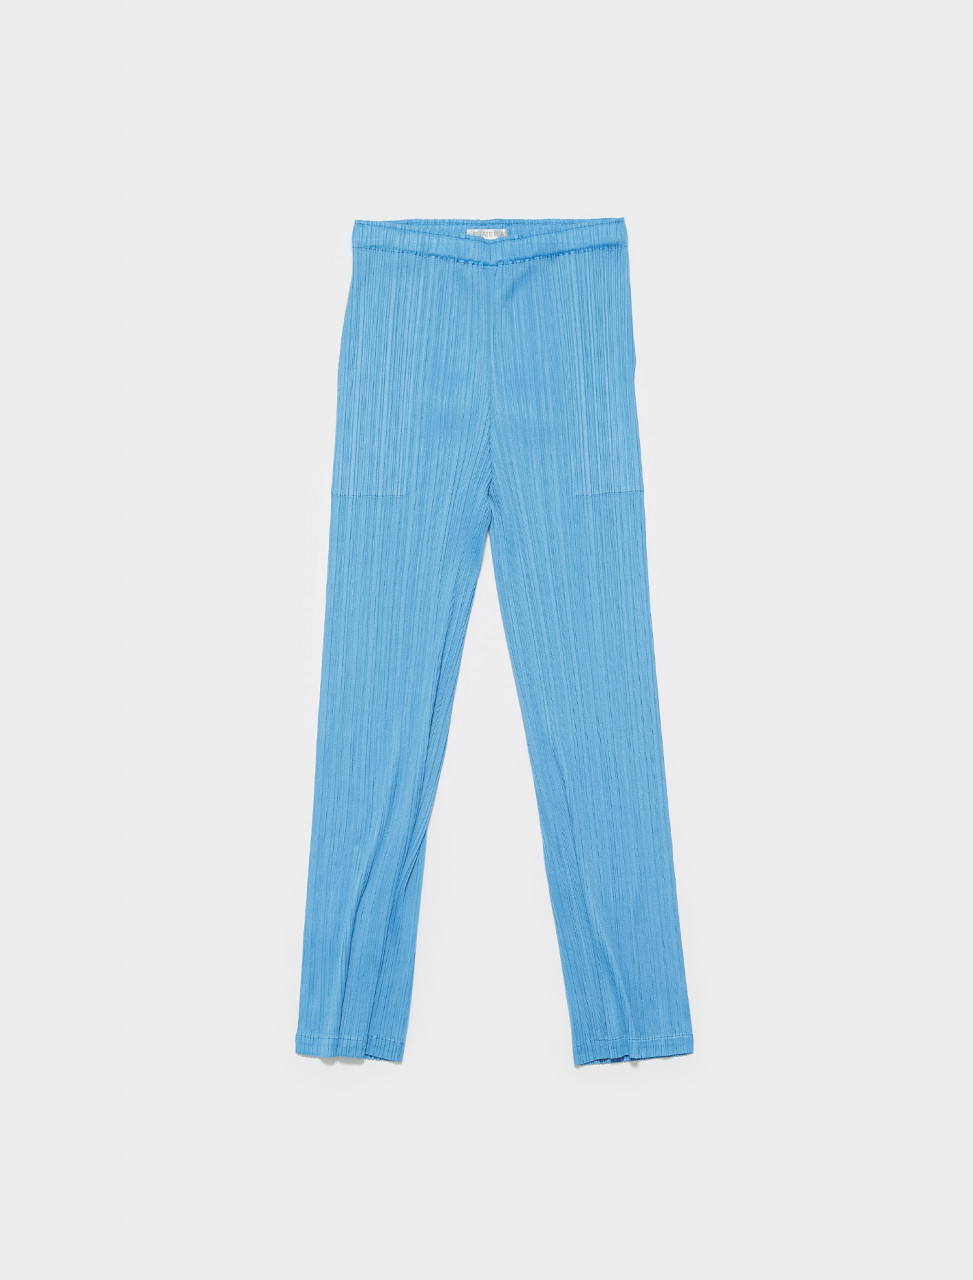 PP16JF533-70PLEATS PLEASE ISSEY MIYAKE TROUSER LIGHT BLUE